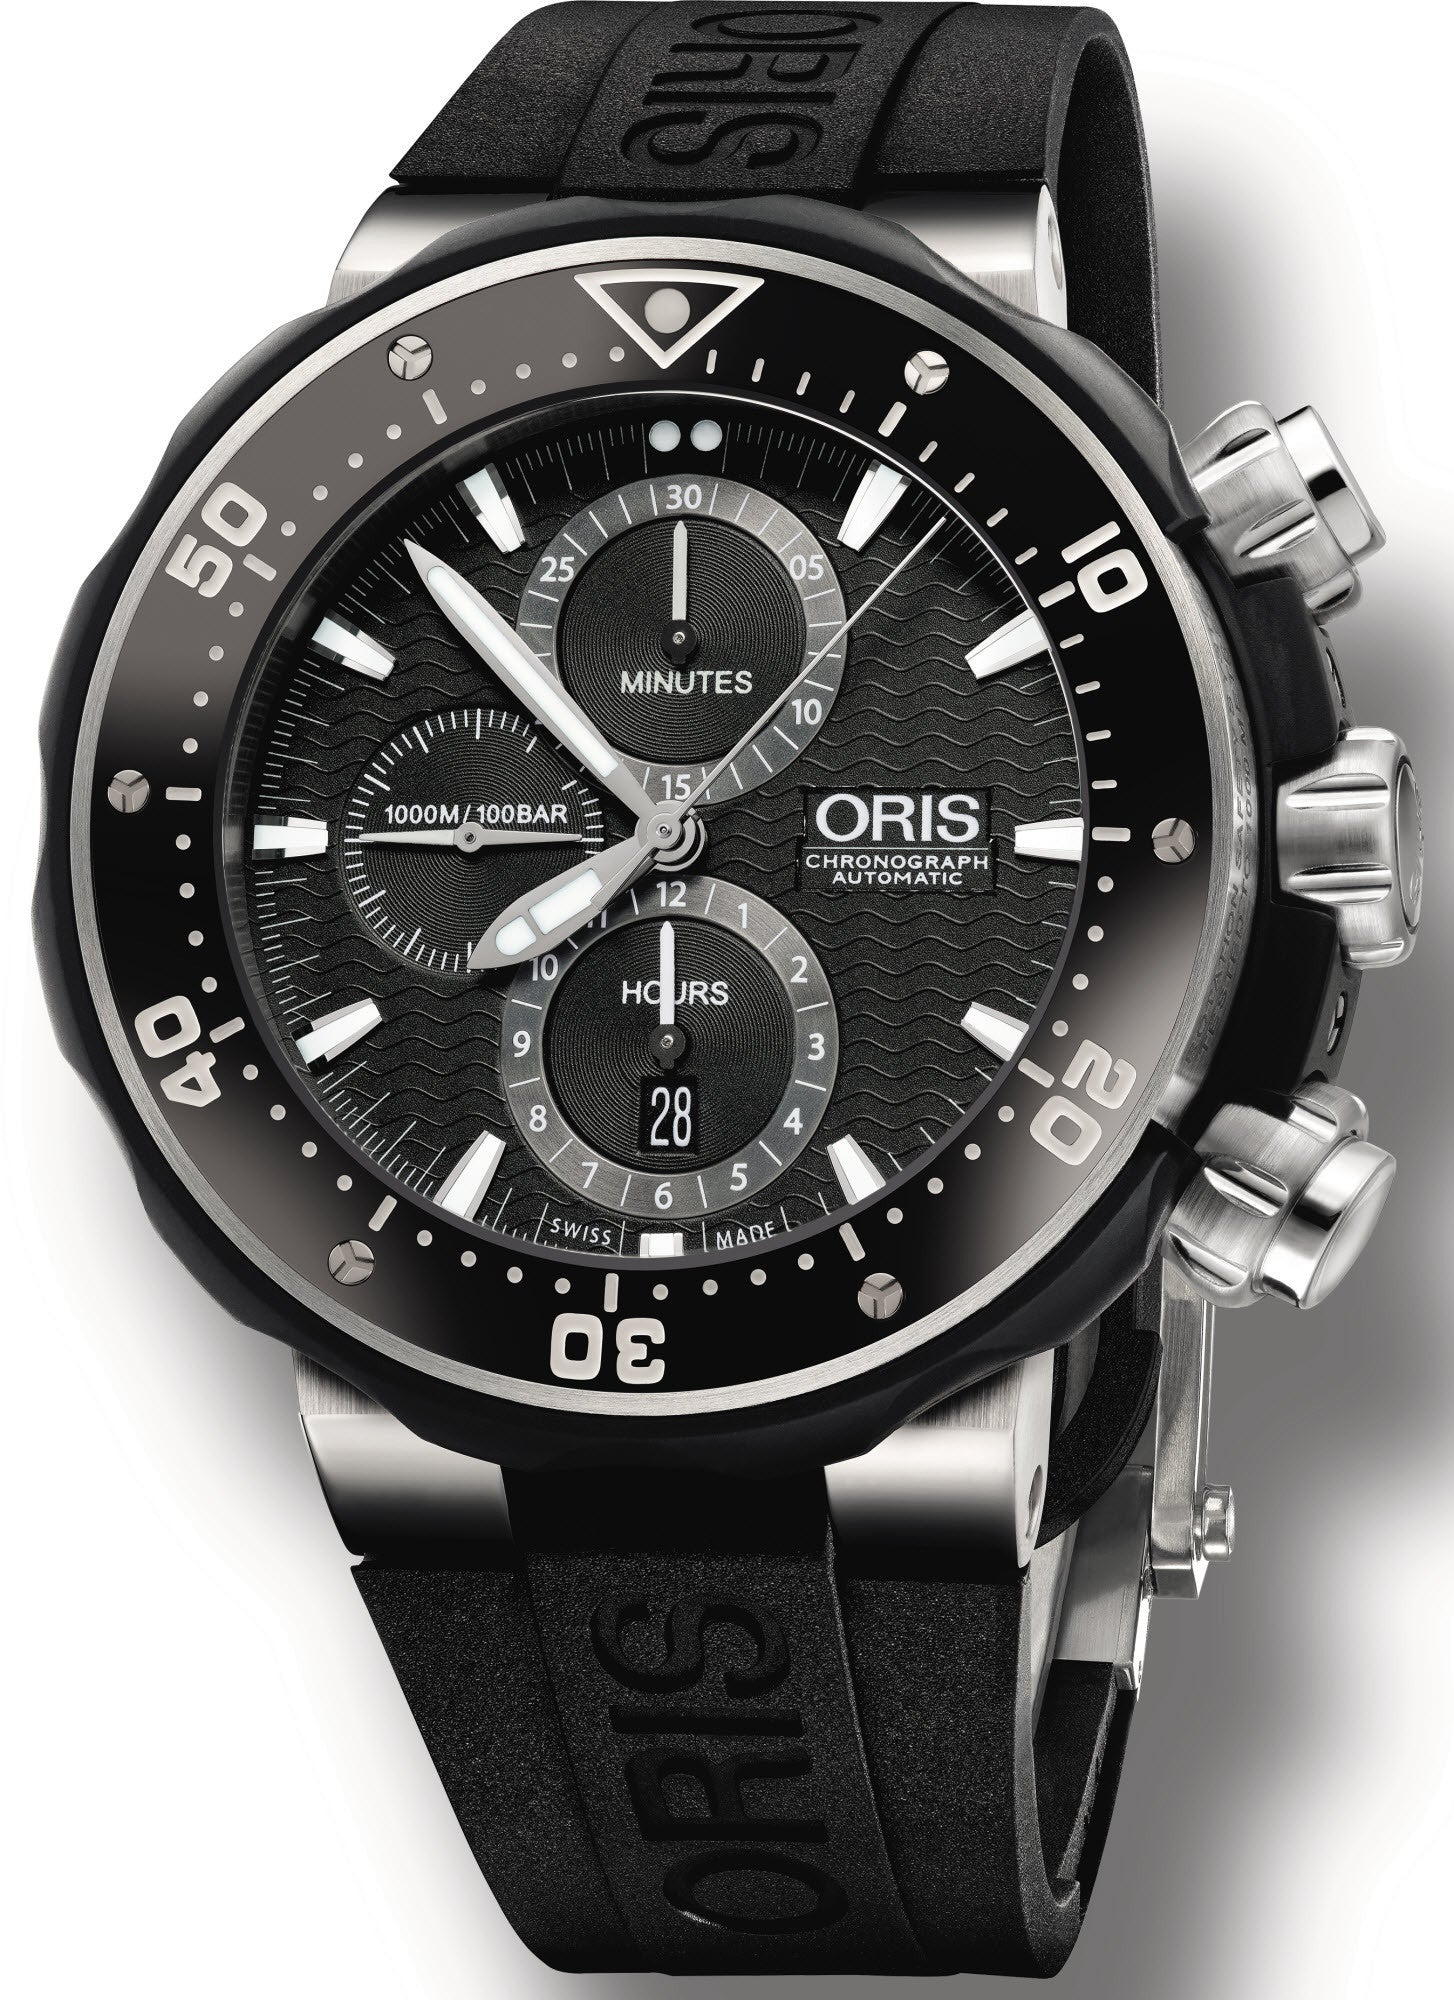 Oris watch prodive chronograph date set 01 774 7683 7154 set watch for Oris watches